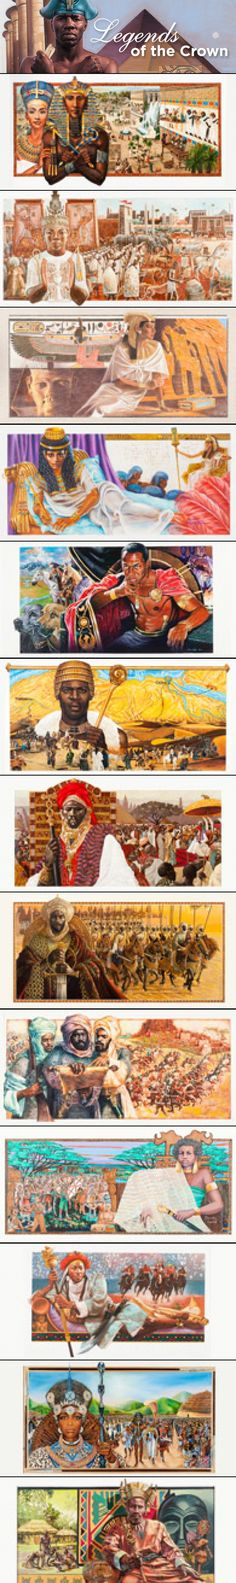 Twenty-three artists were commissioned to create works for this collection over a 25-year span. Each painting depicts an African leader and celebrates his or her impact on rich AFRICAN history.